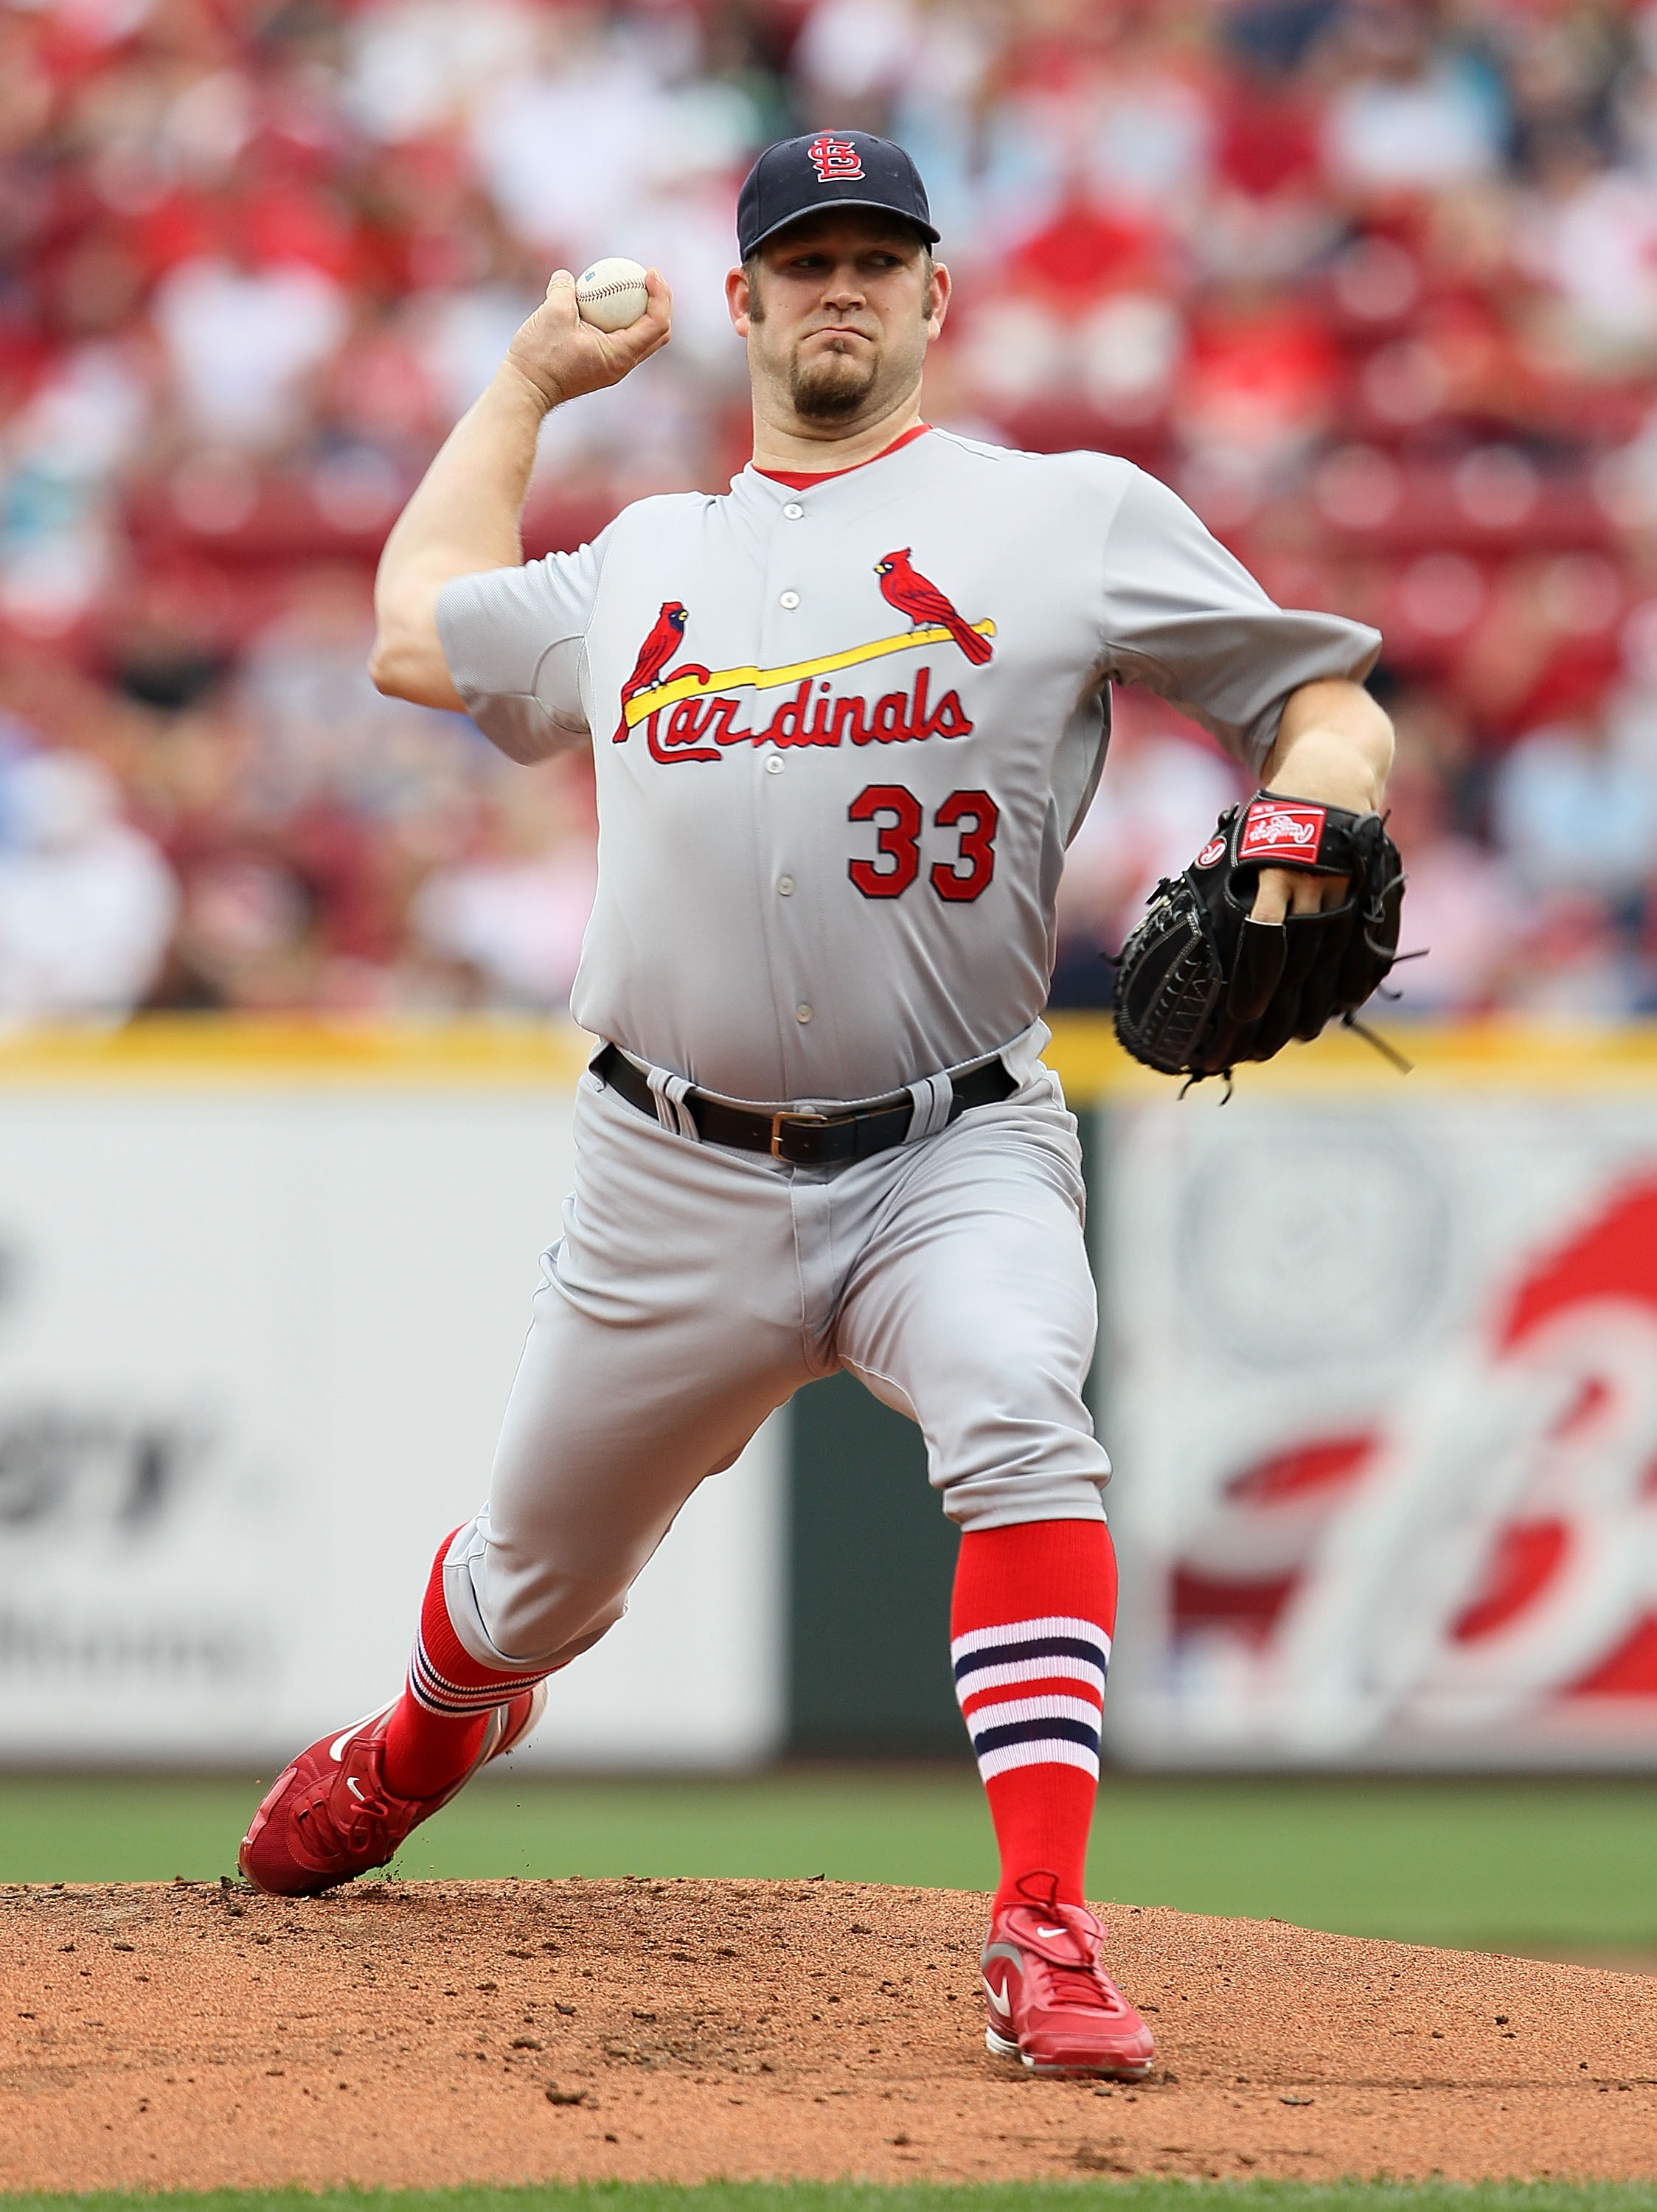 CINCINNATI - MAY 16:  Brad Penny #33 of the St. Louis Cardinals throws a pitch during the game against the Cincinnati Reds at Great American Ball Park on May 16, 2010 in Cincinnati, Ohio.  (Photo by Andy Lyons/Getty Images)